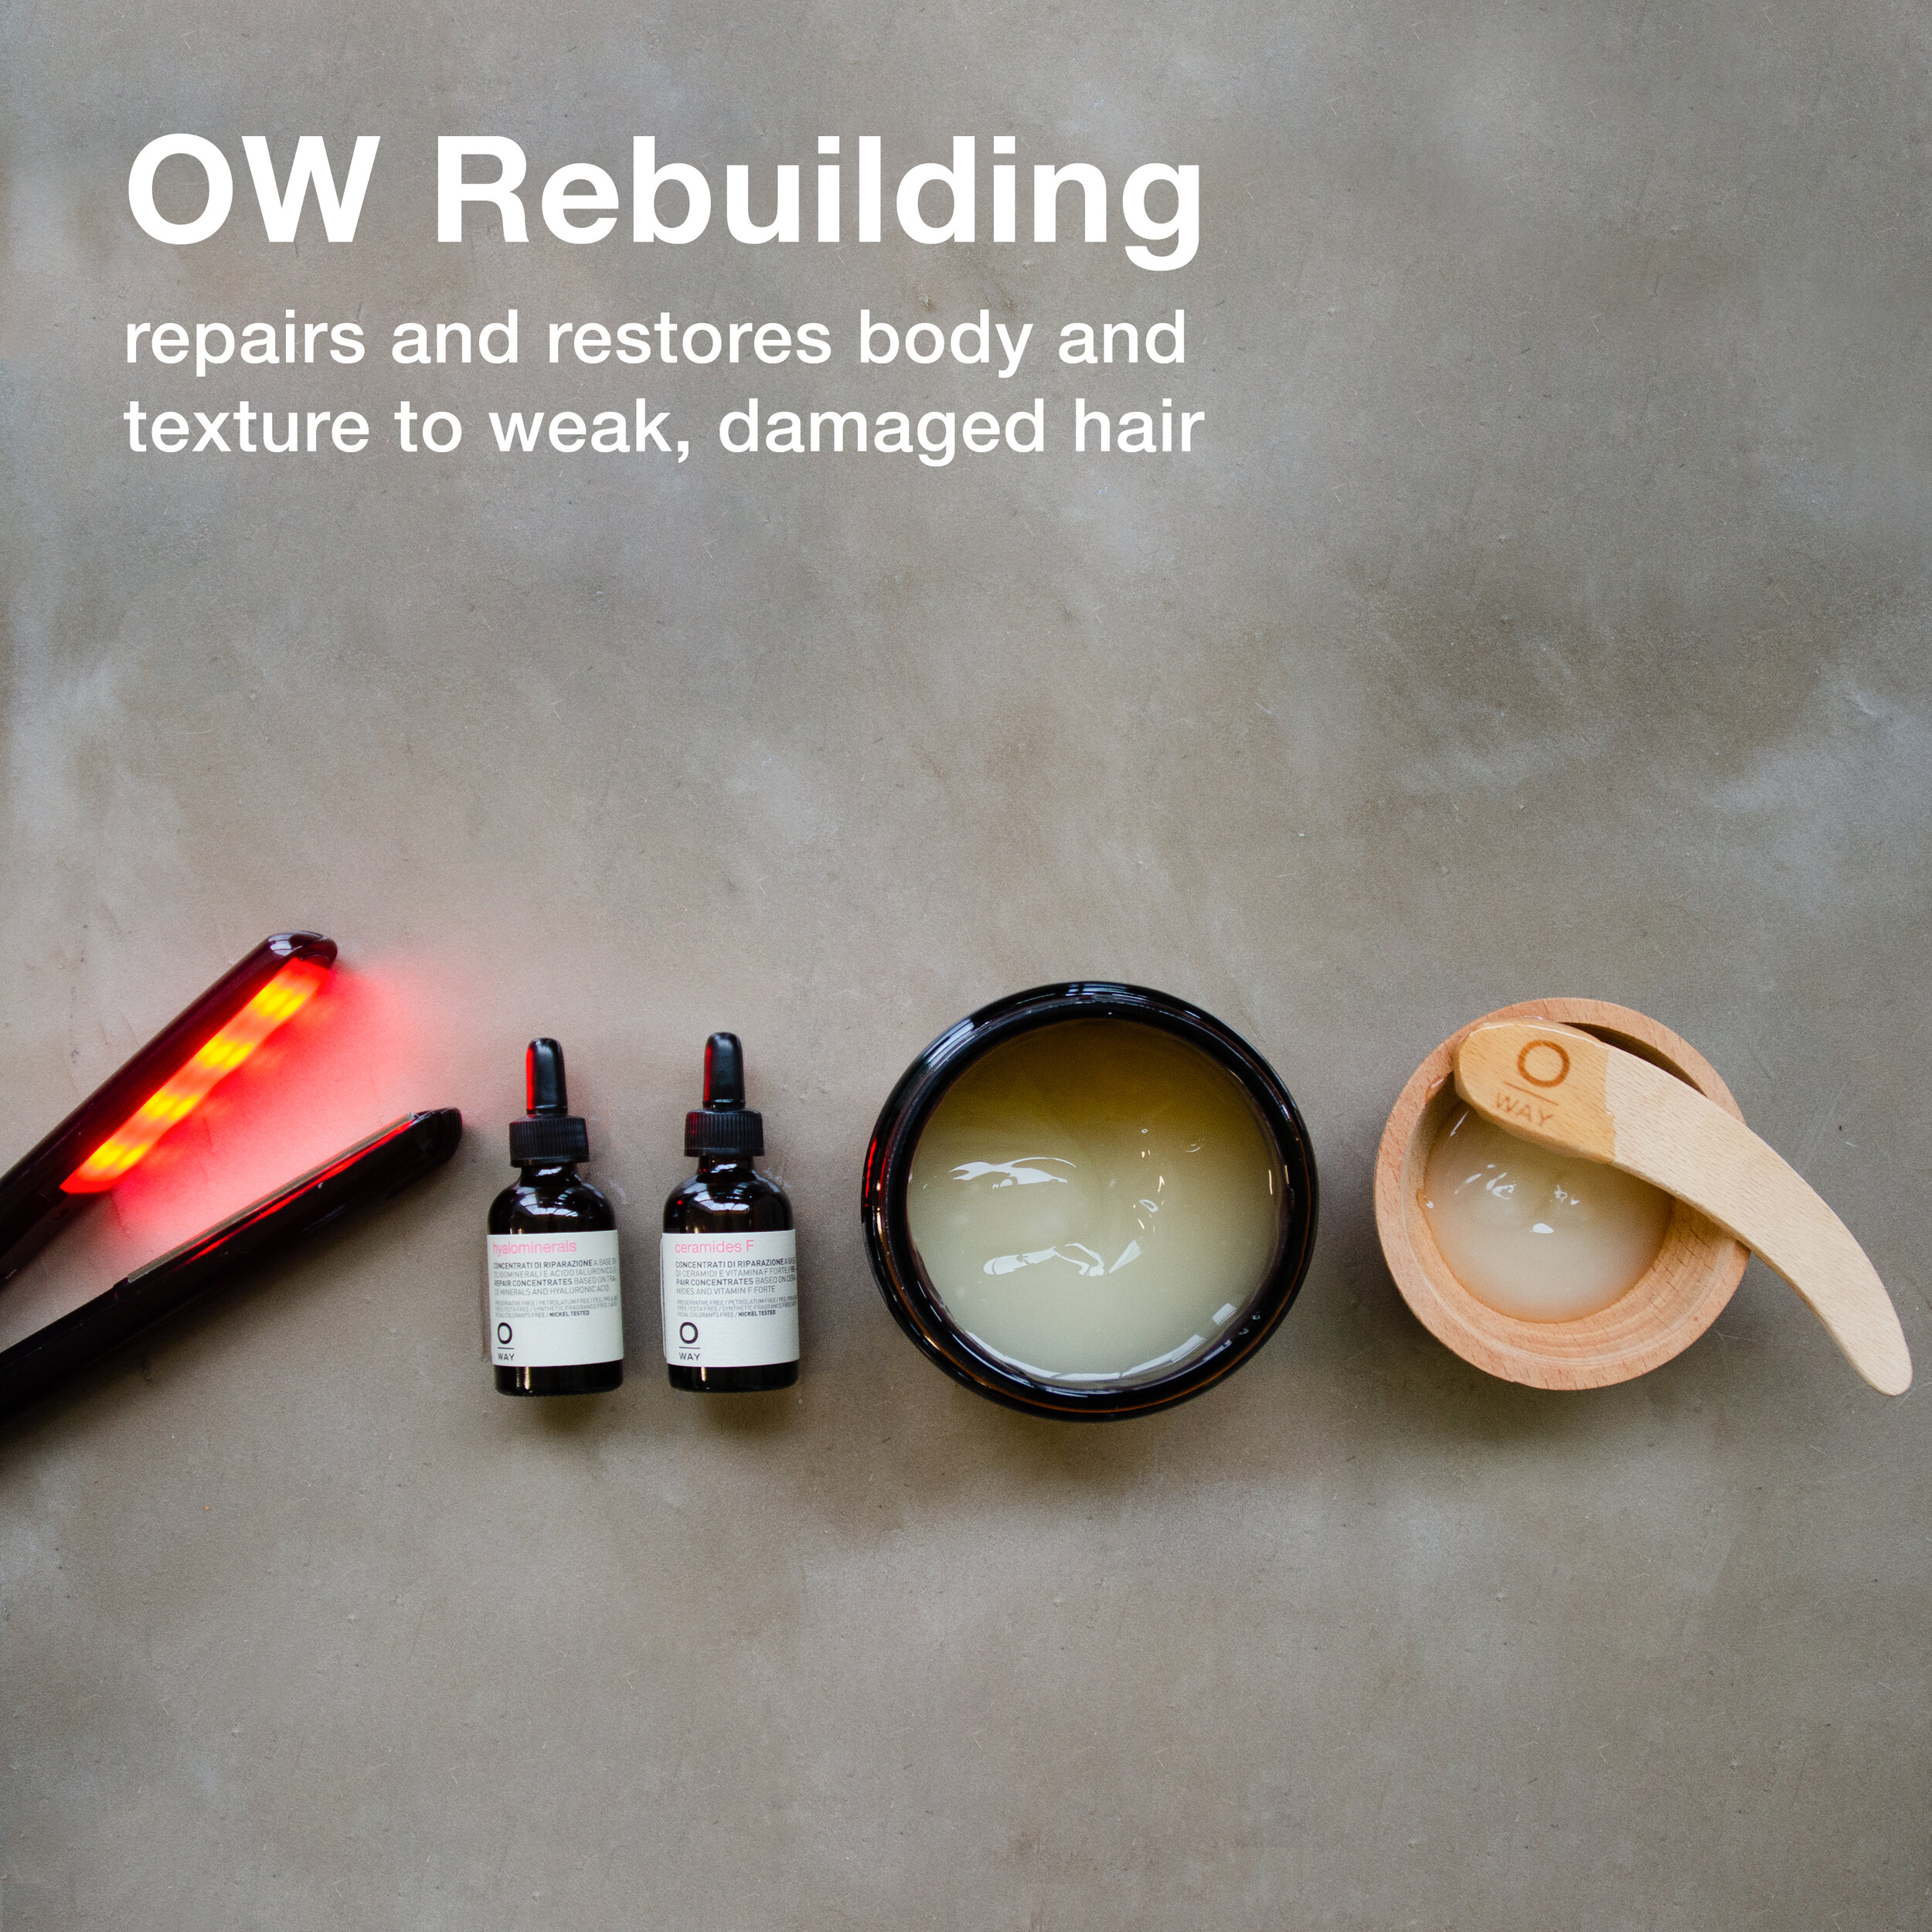 """Oway Rebuilding Serum is made with an innovative Phytokeratin™ complex of 18 biomimetic acids that exactly reproduce the hair's keratin structure. It strengthens the hair by acting as """"intracellular cement"""" for the cuticle and cortex to refill and reinforce the chains of the hair. Ceramides F restore and strengthen both the skin and hair with a revolutionary botanical-based concentrate. Vitamin F Forte restores the skin and hair's delicate lipid barrier, creating a protective layer around the cuticle to prevent further damage. Ceramides penetrate the lipid barrier to regenerate and """"fill in"""" missing pieces of the hair. Hyaluronic Acid seals cuticle scales and binds to the hair and skin, allowing it to retain moisture and softness."""